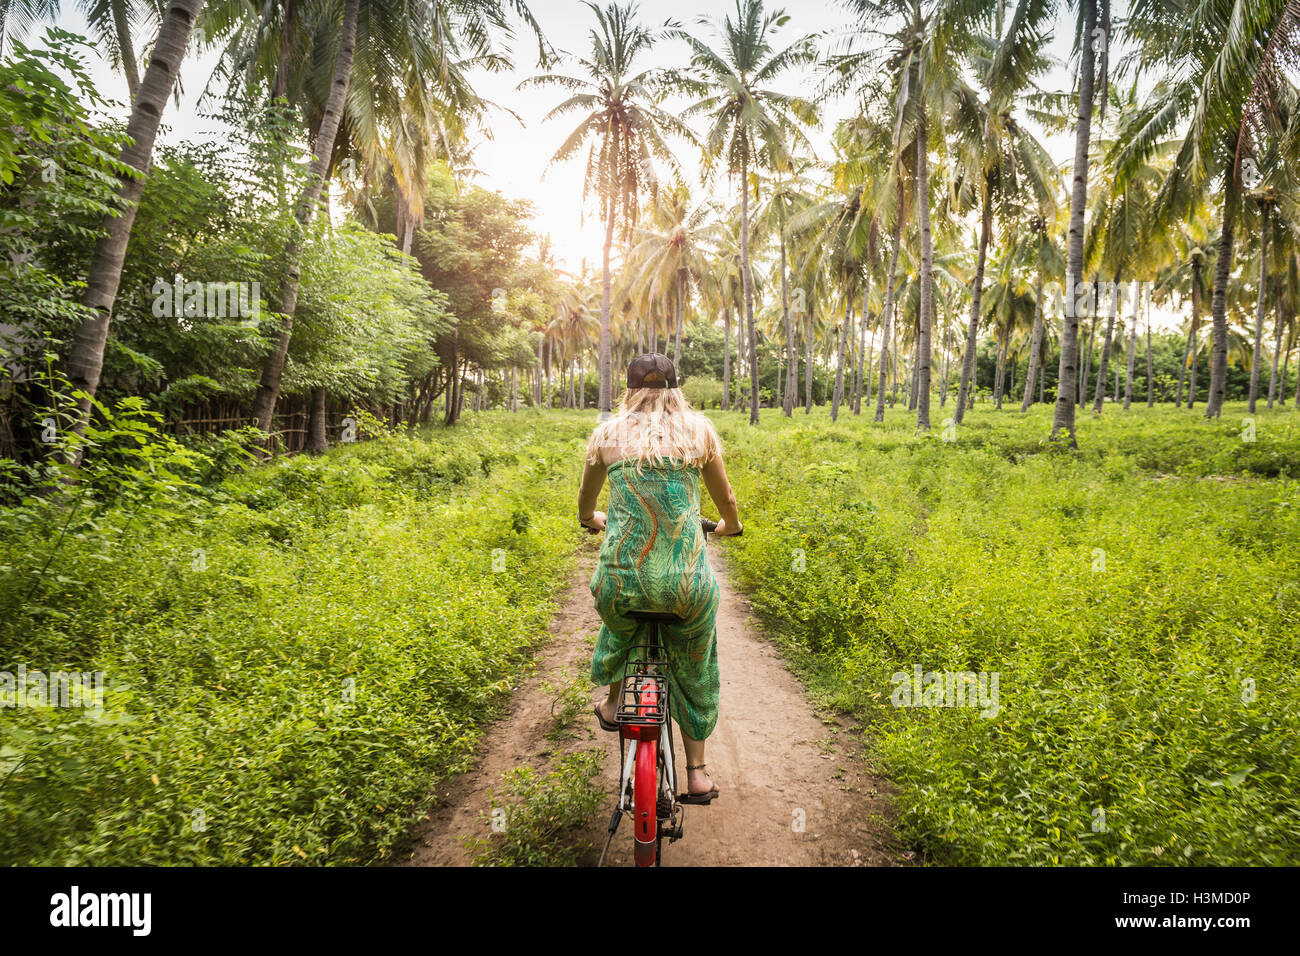 Rear view of young woman cycling in palm tree forest, Gili Meno, Lombok, Indonesia - Stock Image